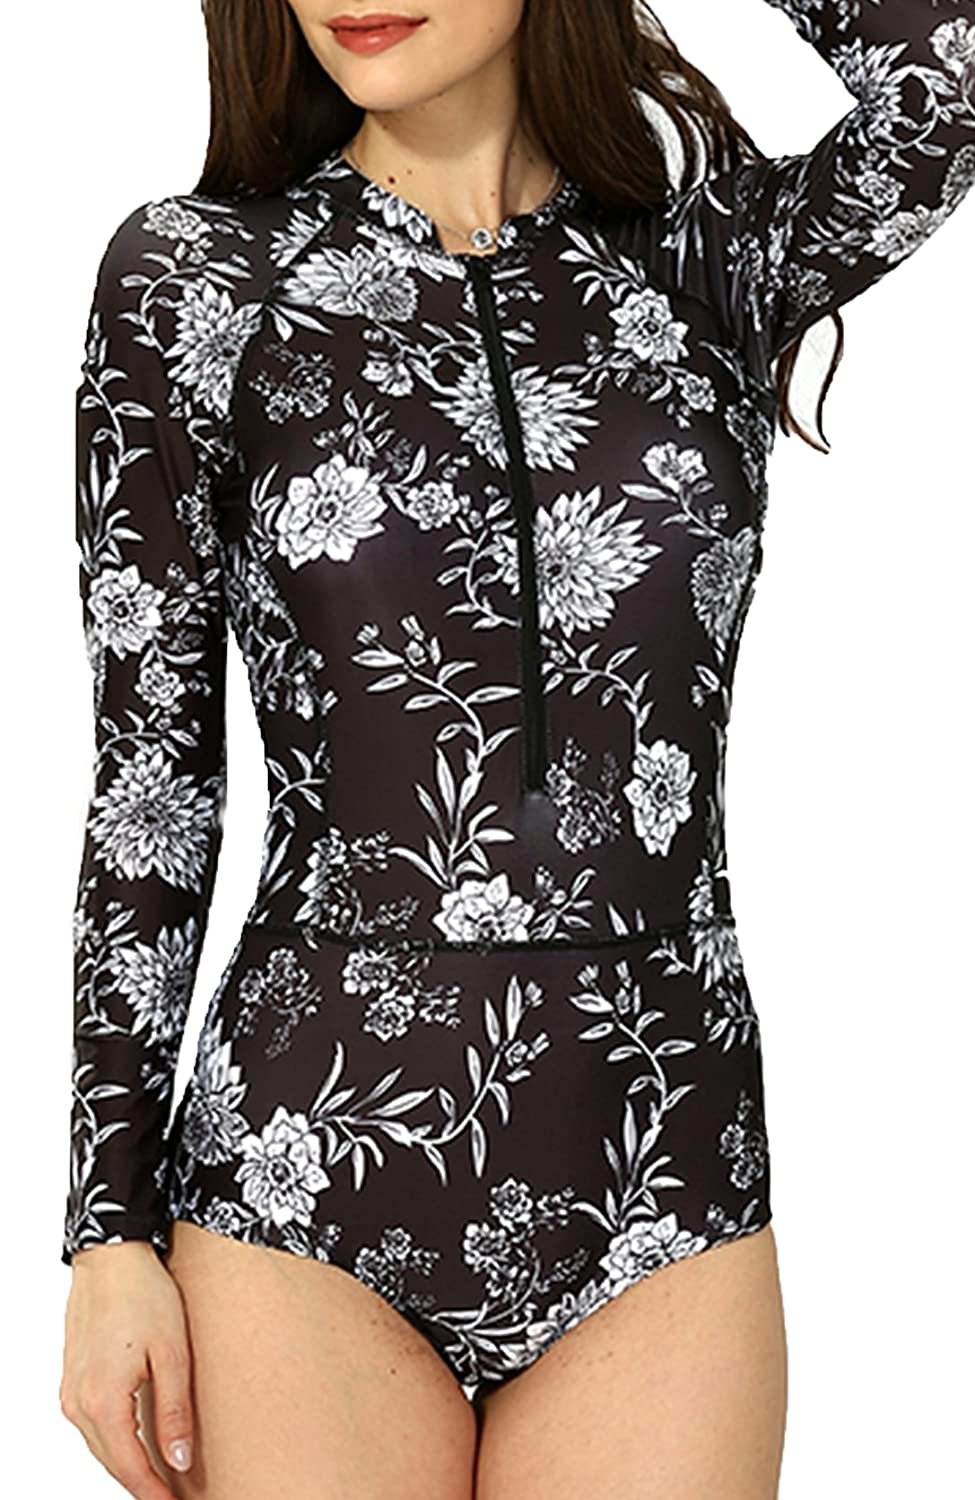 84aaf4fa0a Upopby Women's Floral Printed Long Sleeve Rash Guard Surfing Wetsuit Swimwear  One Piece Swimsuit at Amazon Women's Clothing store: